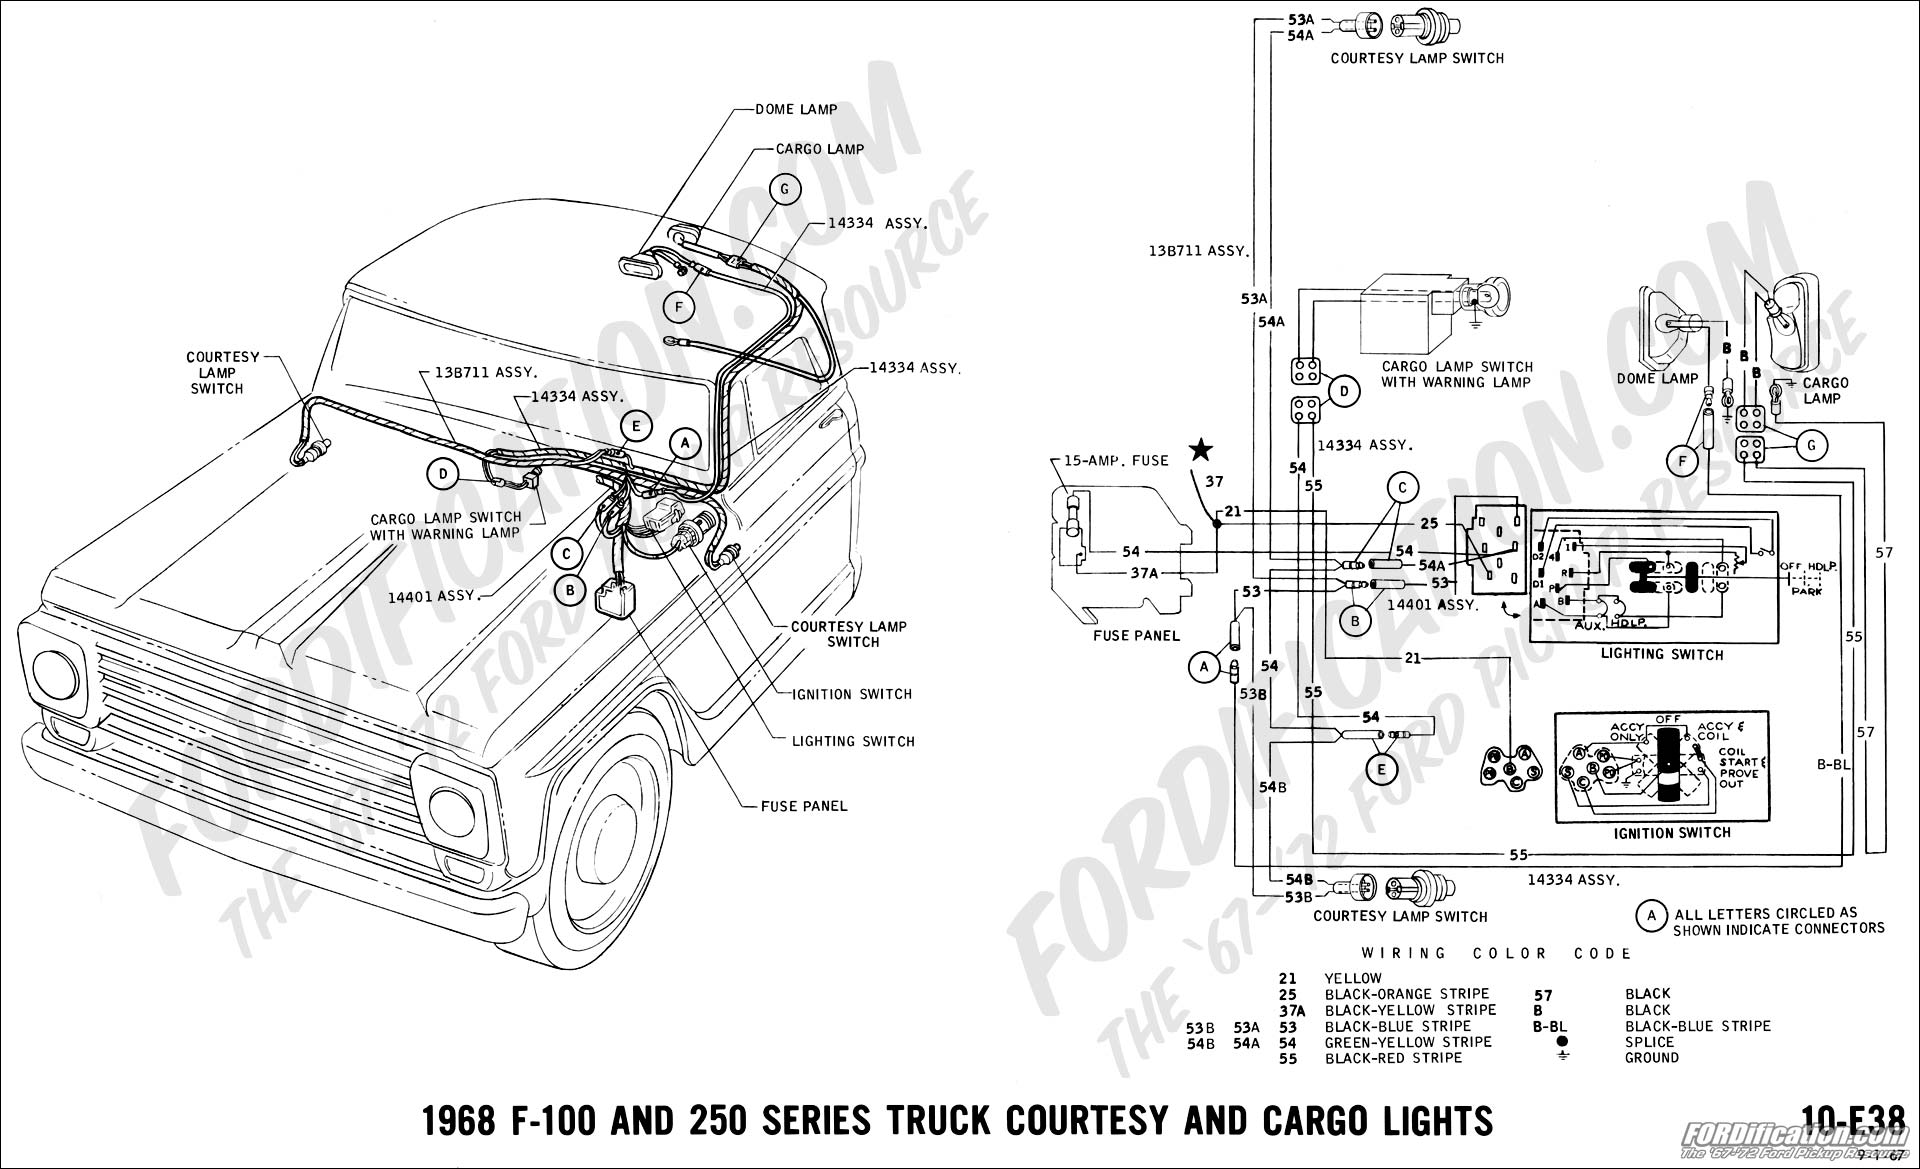 68 40 ford truck technical drawings and schematics section h wiring truck camper wiring diagram at gsmx.co